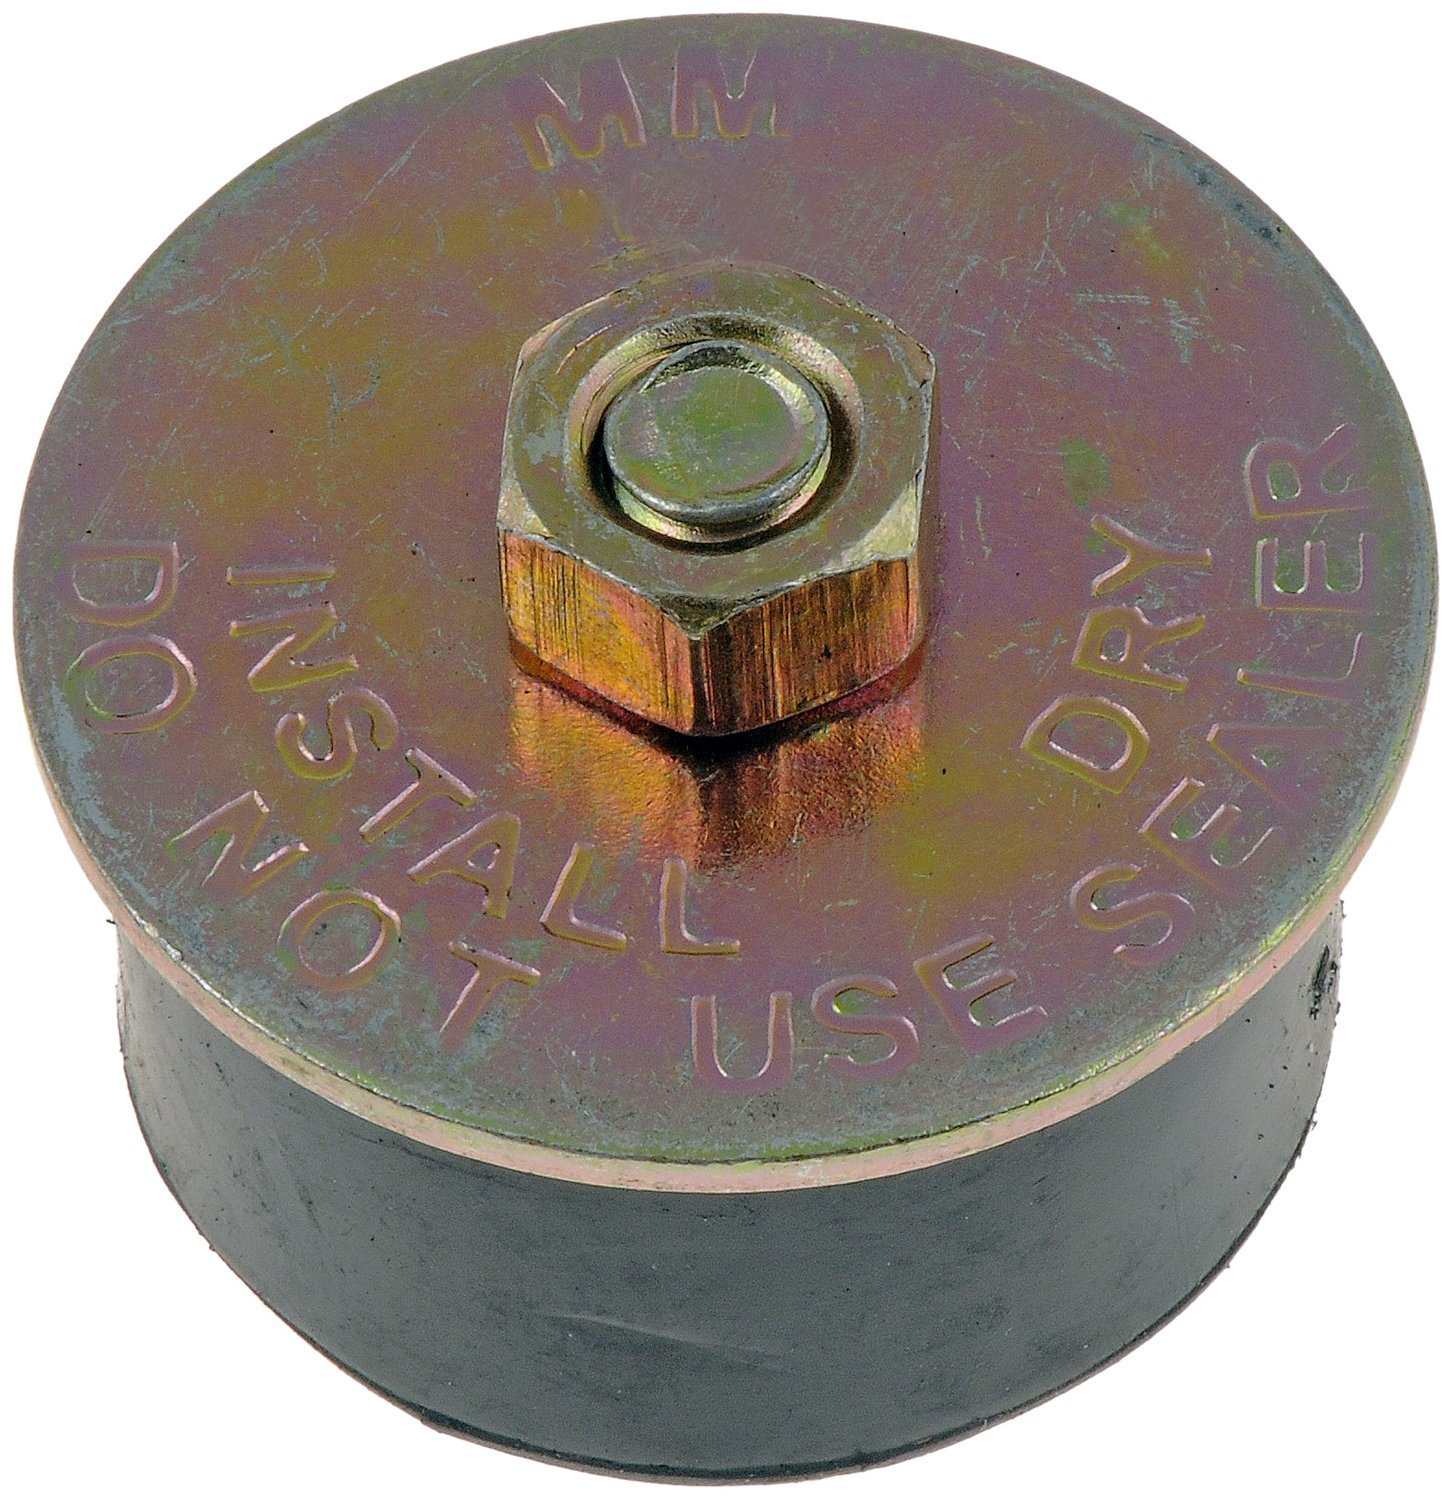 Dorman 02603 Expansion Plug